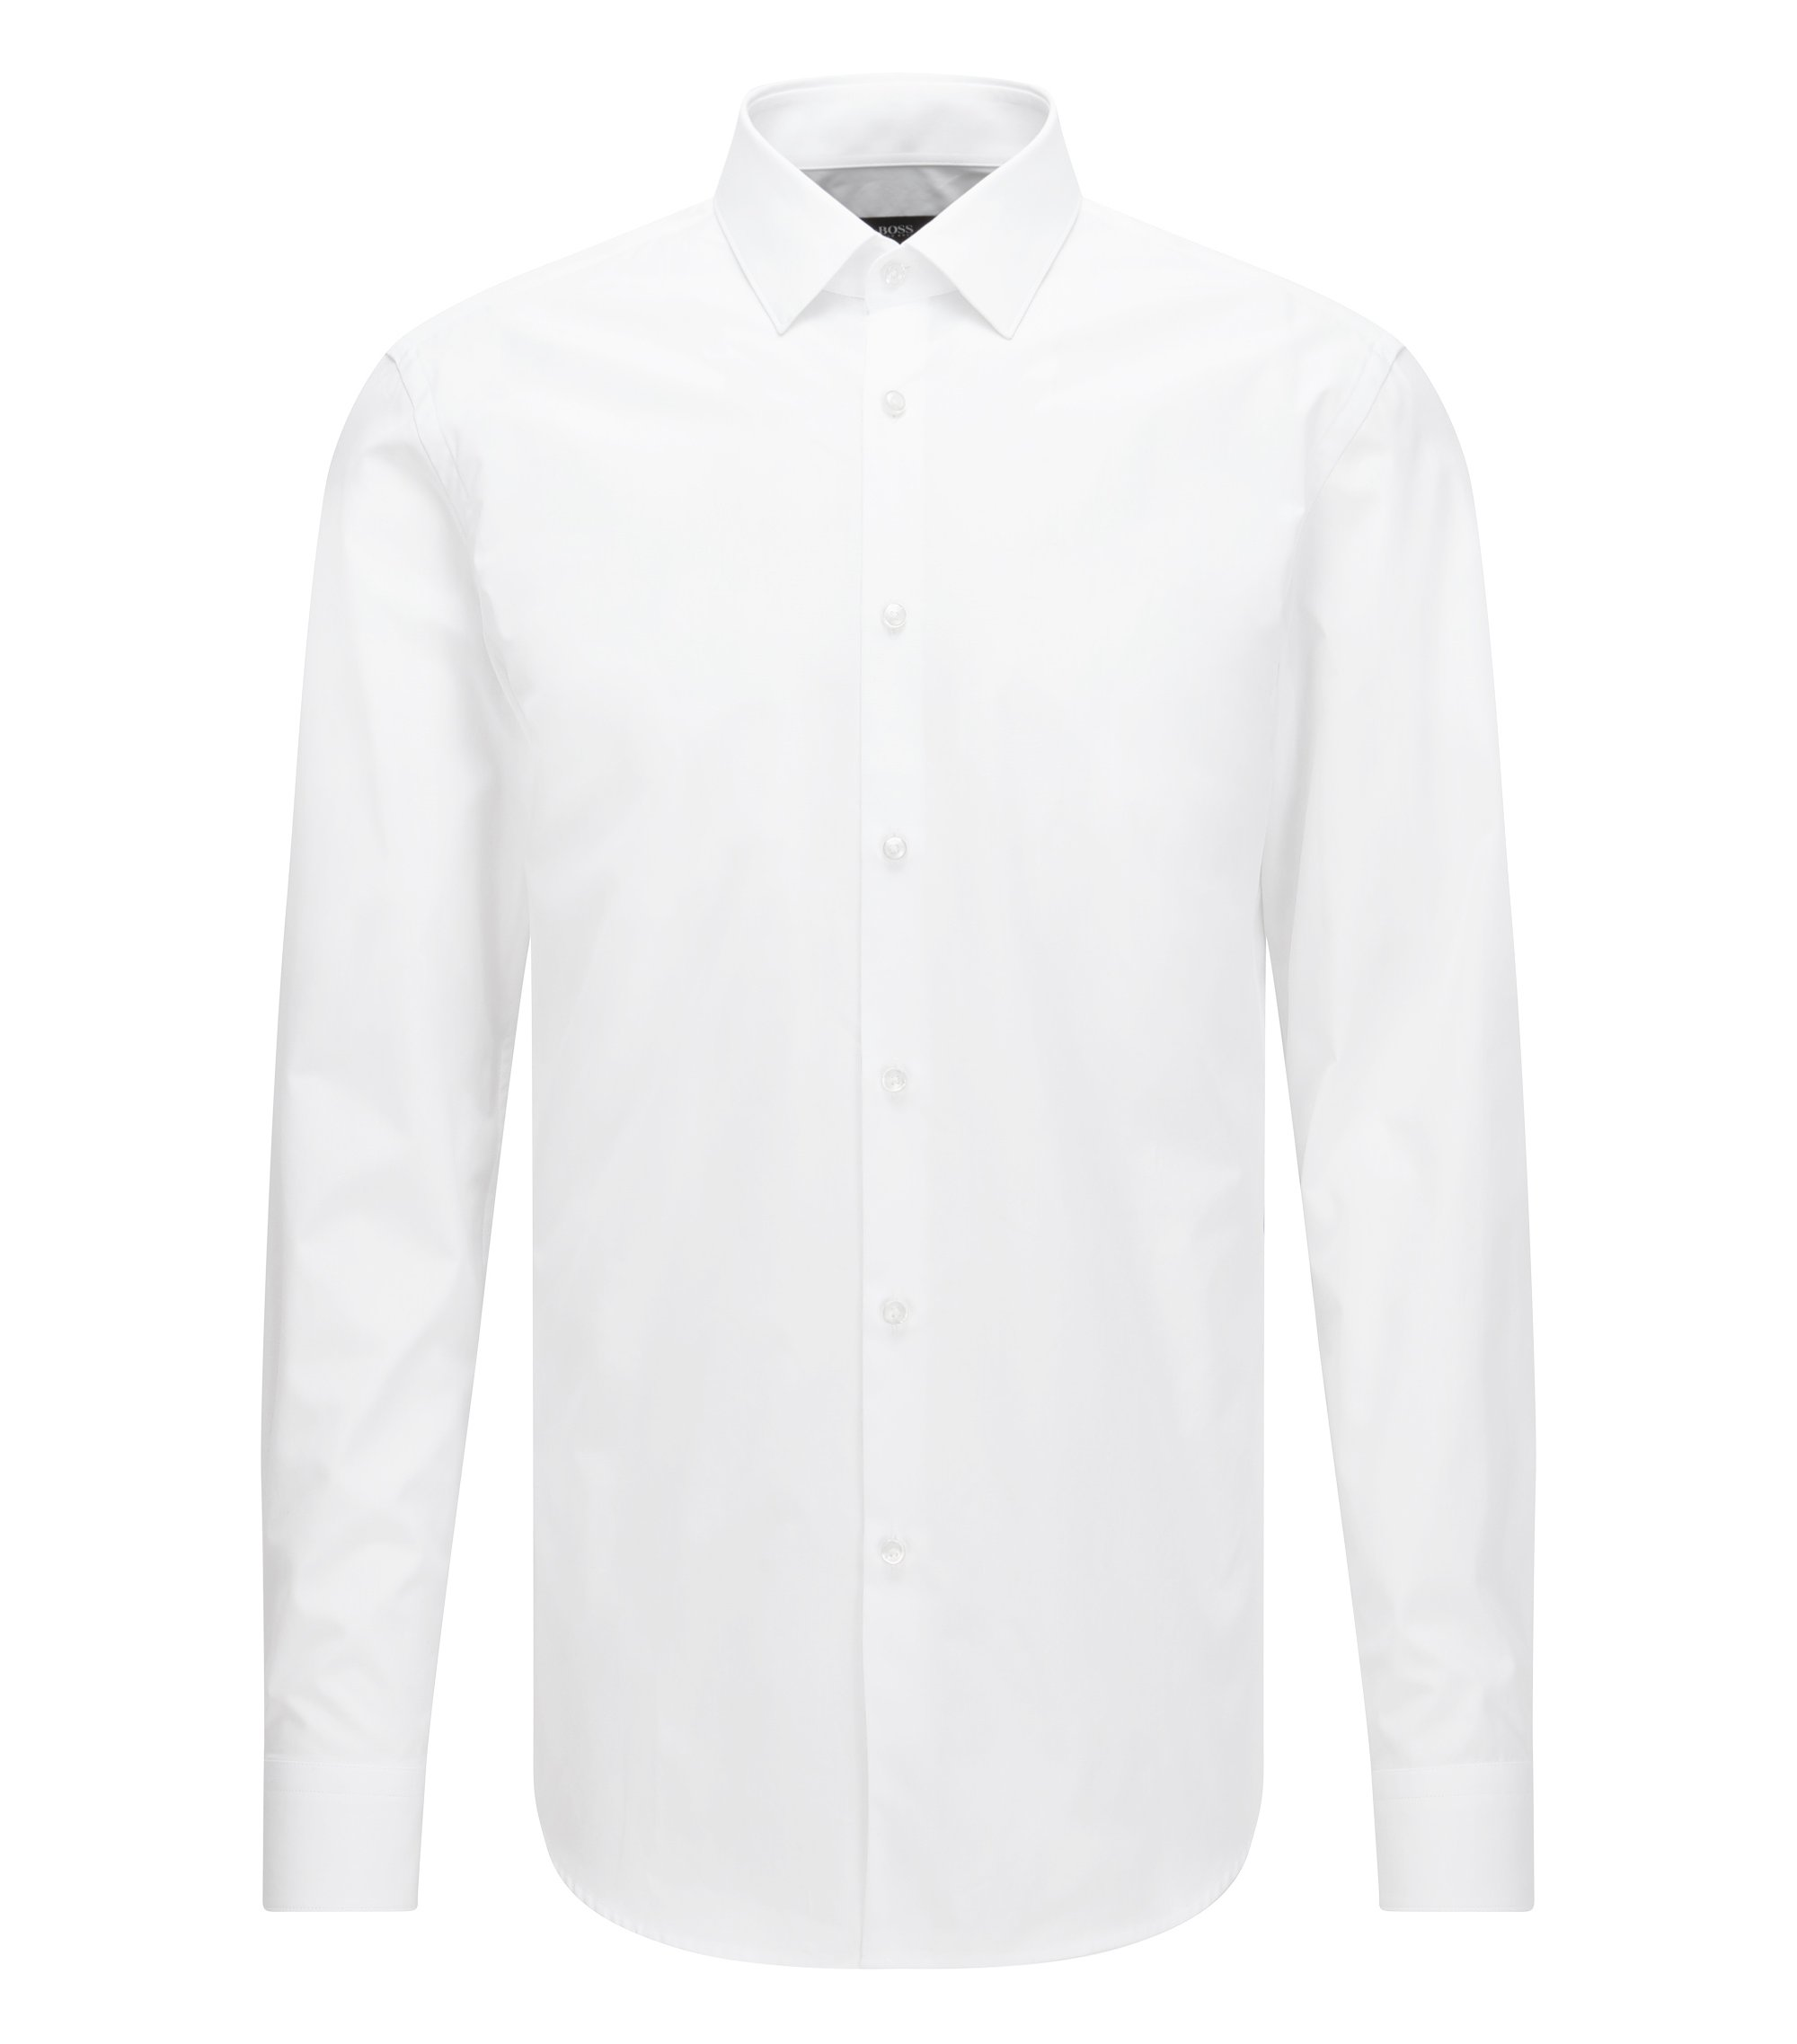 Two-Ply Cotton Dress Shirt, Slim Fit | Isko, White